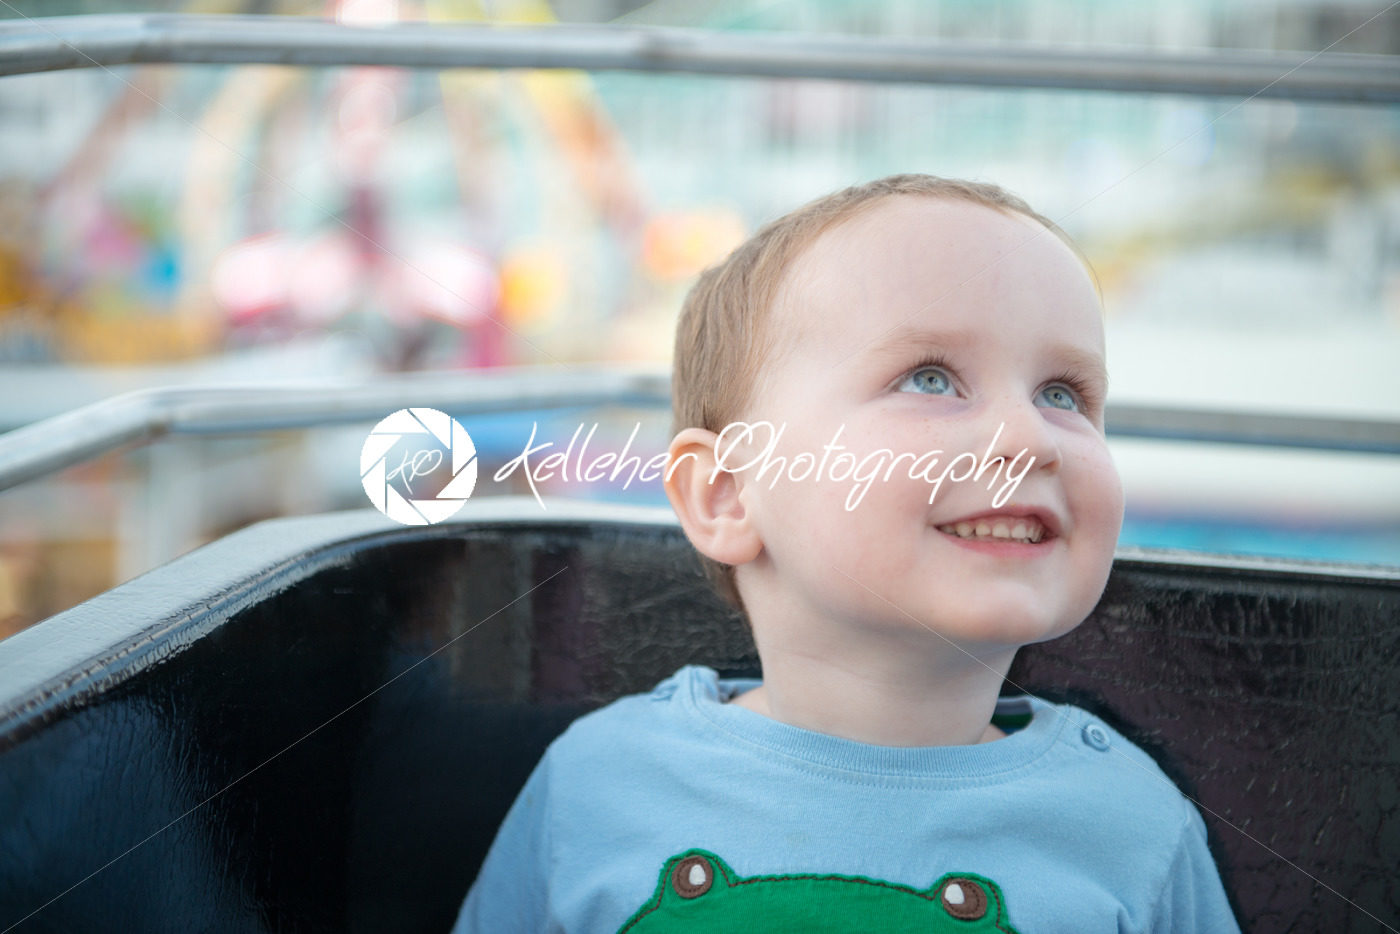 Young boy on boardwalk amusement ride ferris wheel looking up - Kelleher Photography Store